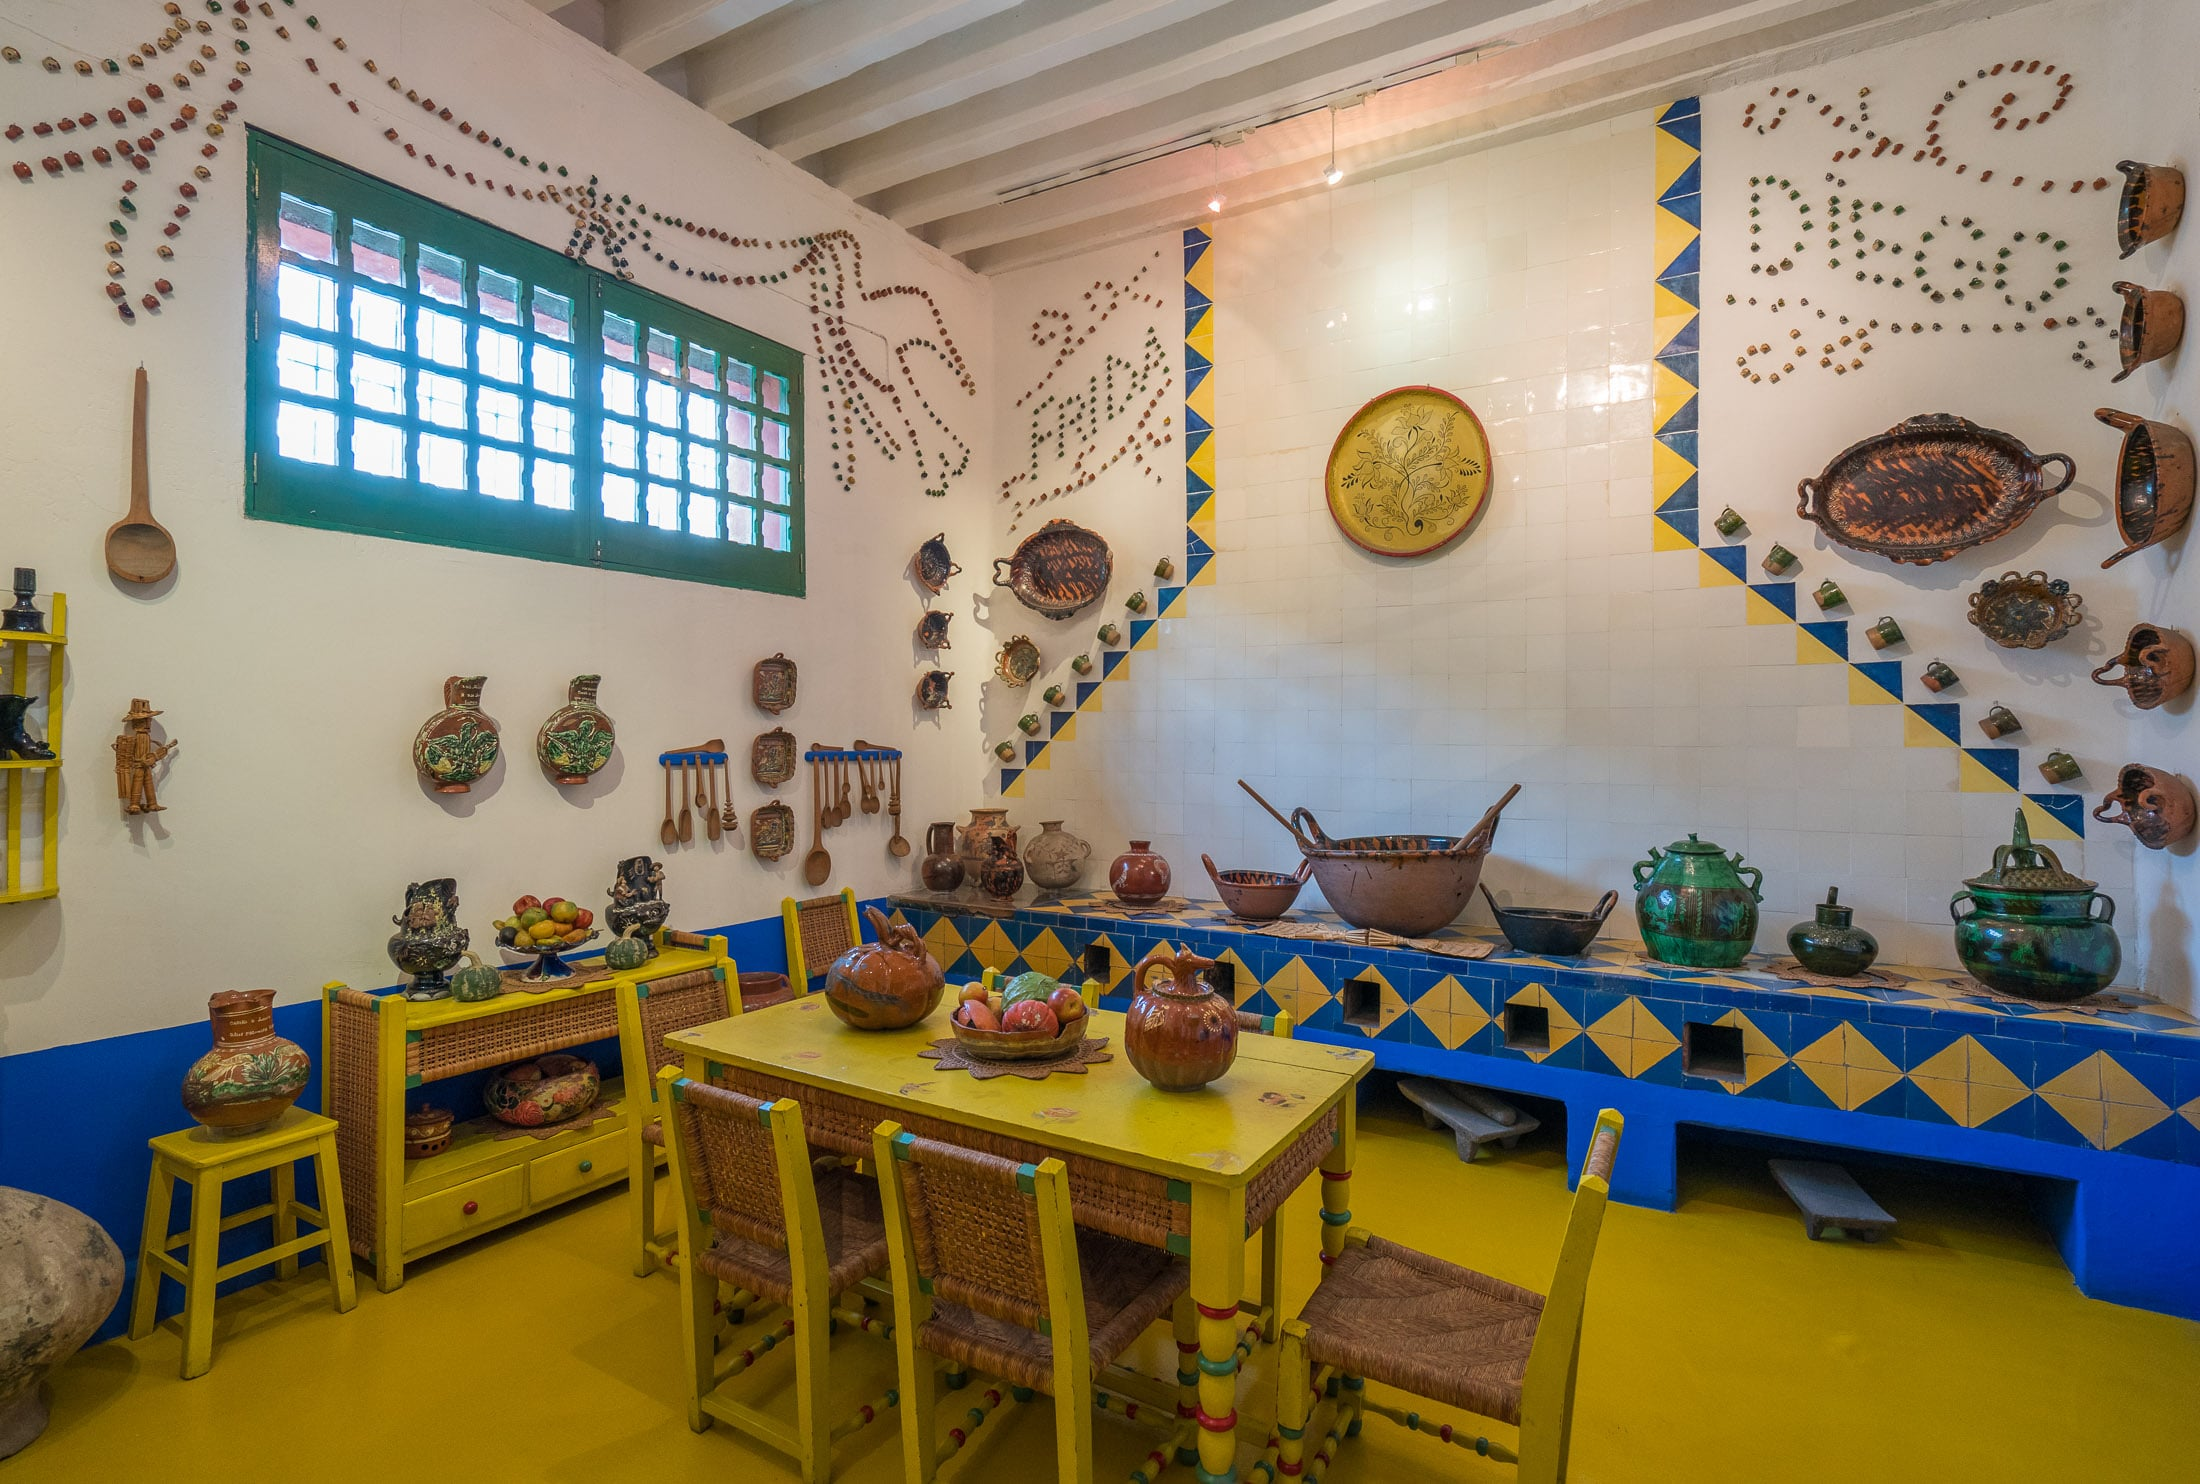 Frida Kahlo's kitchen in her Mexico City home (now museum).